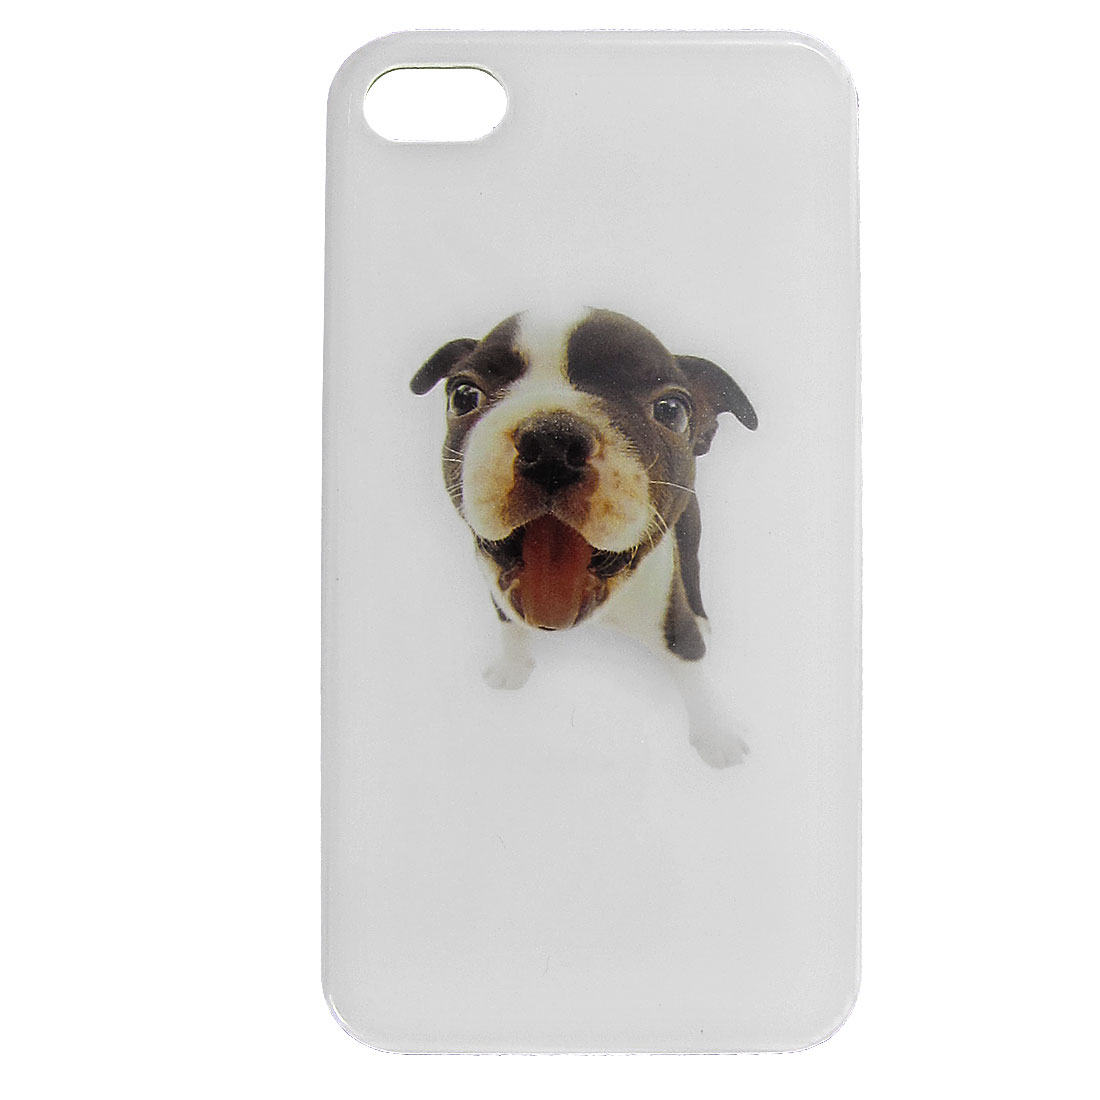 Dog Prints Hard Plastic IMD Back Shell for iPhone 4 4G 4S